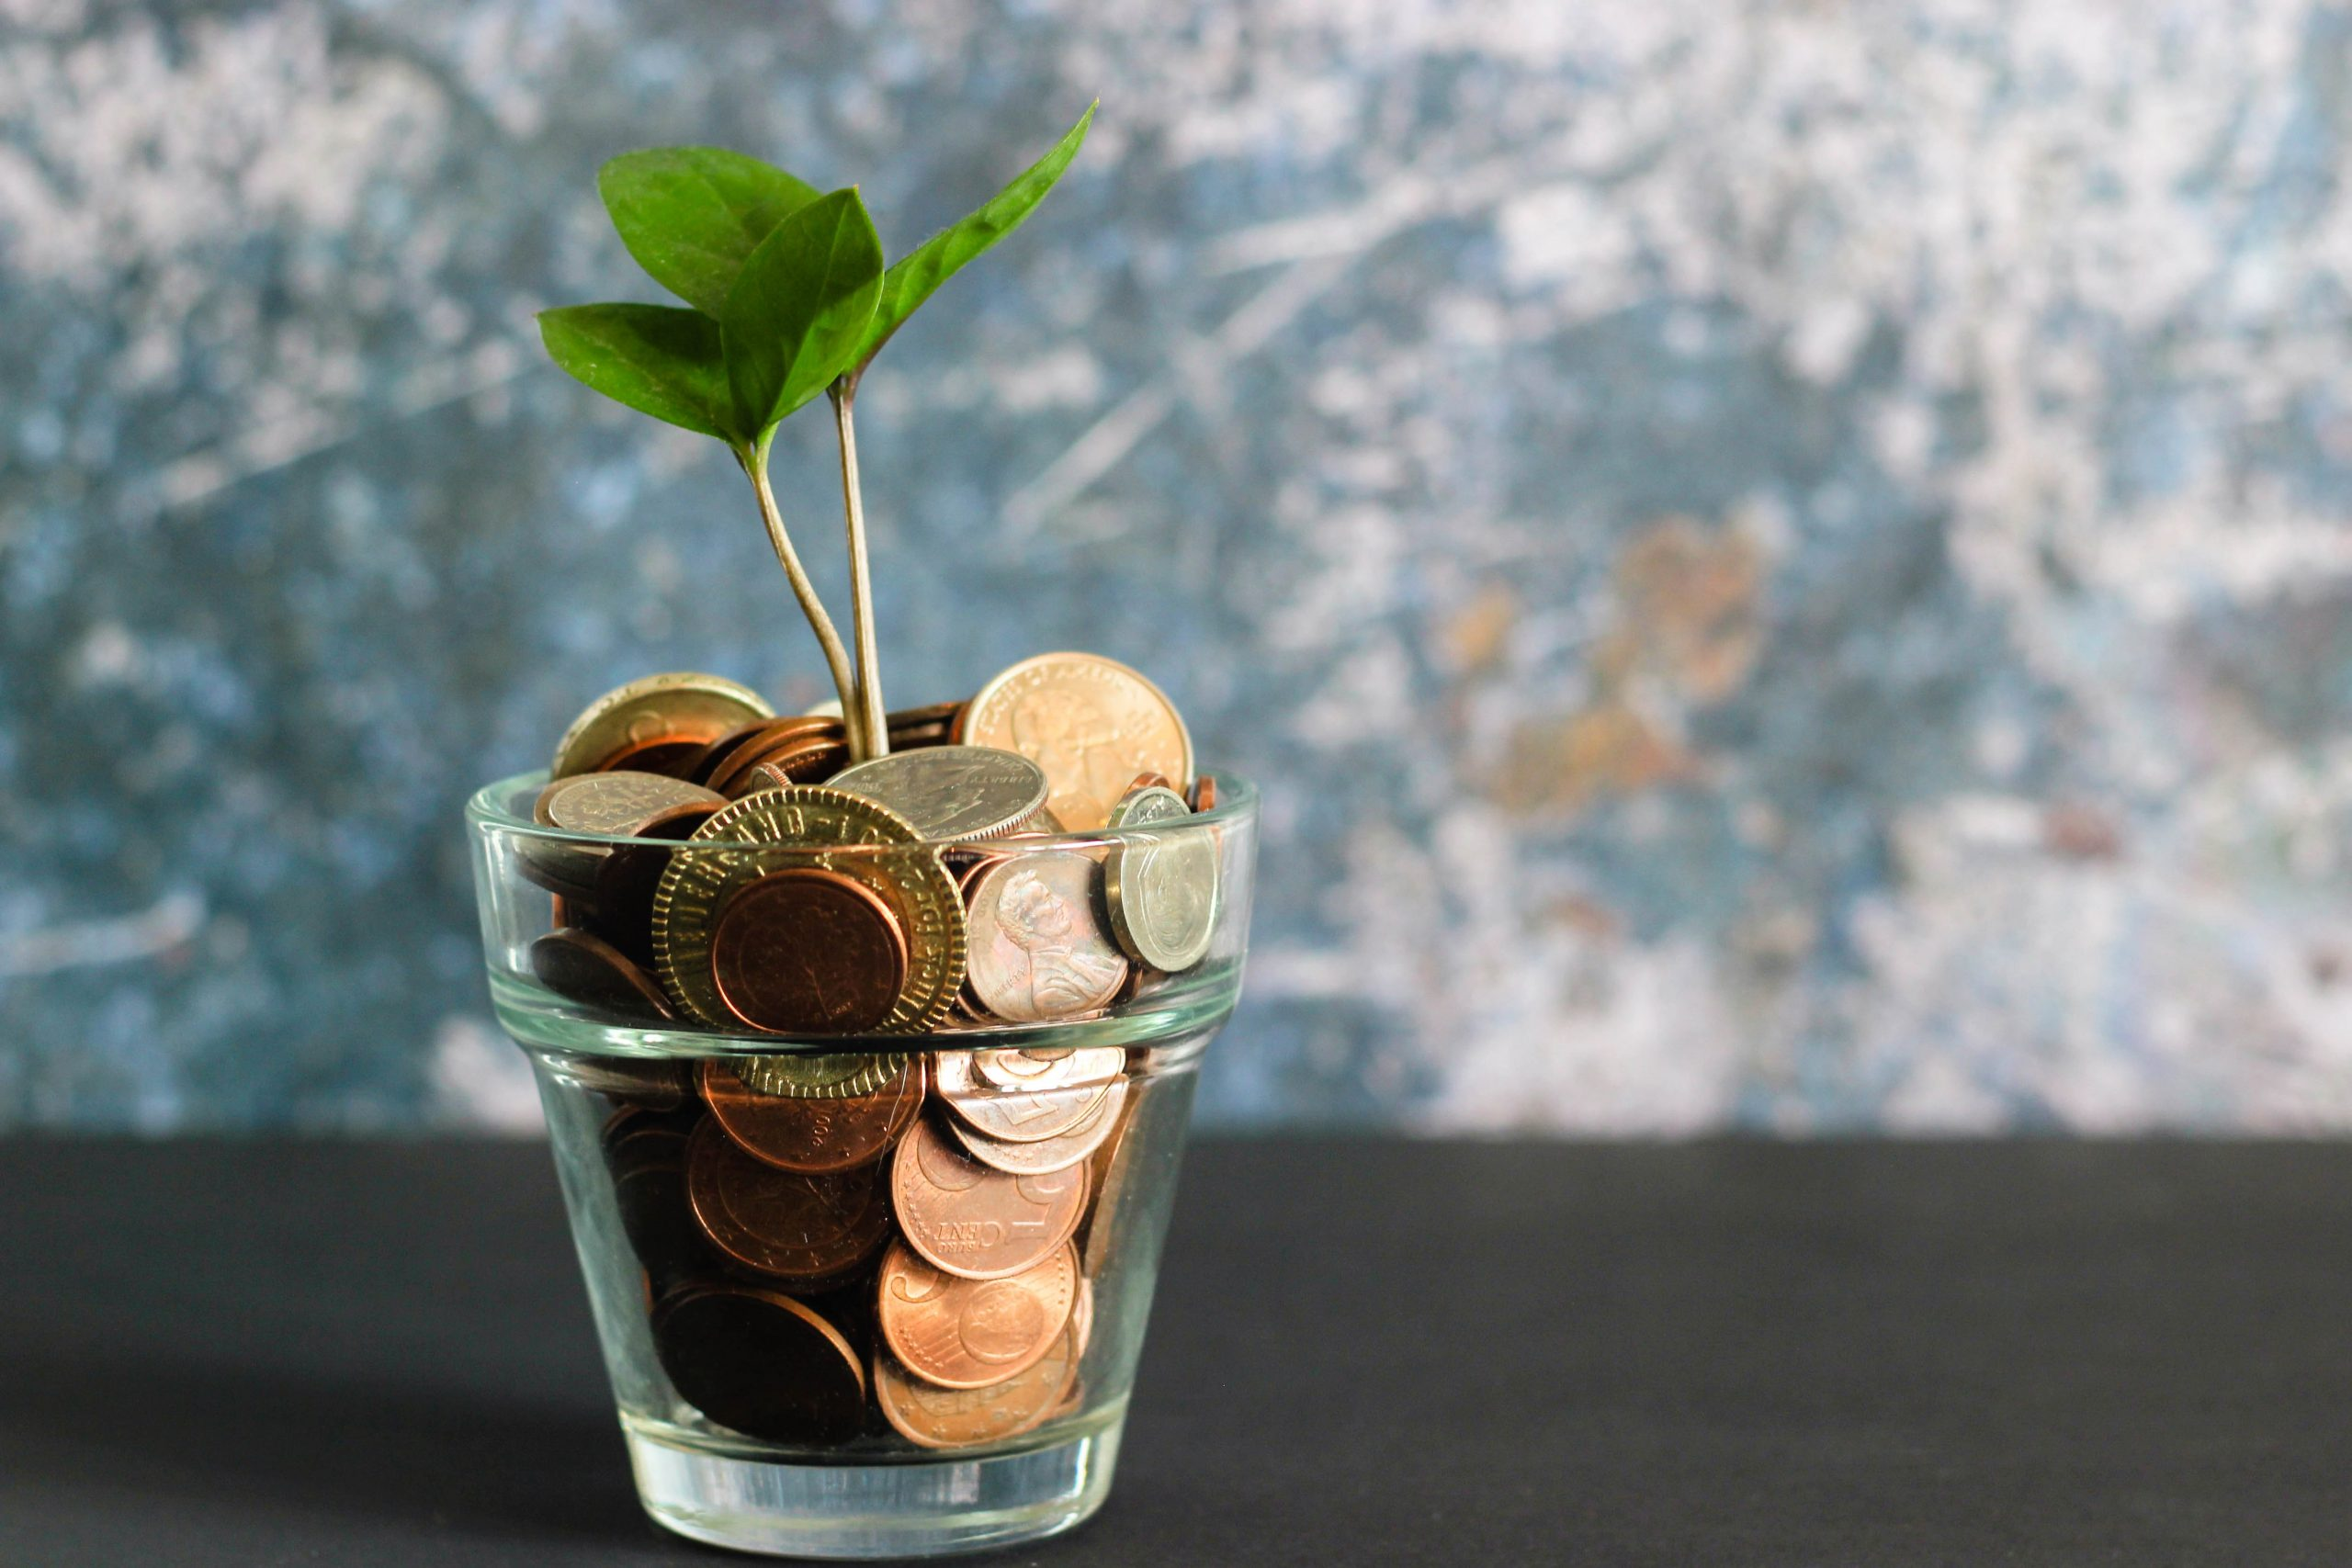 A glass filled with money and a plant growing from it